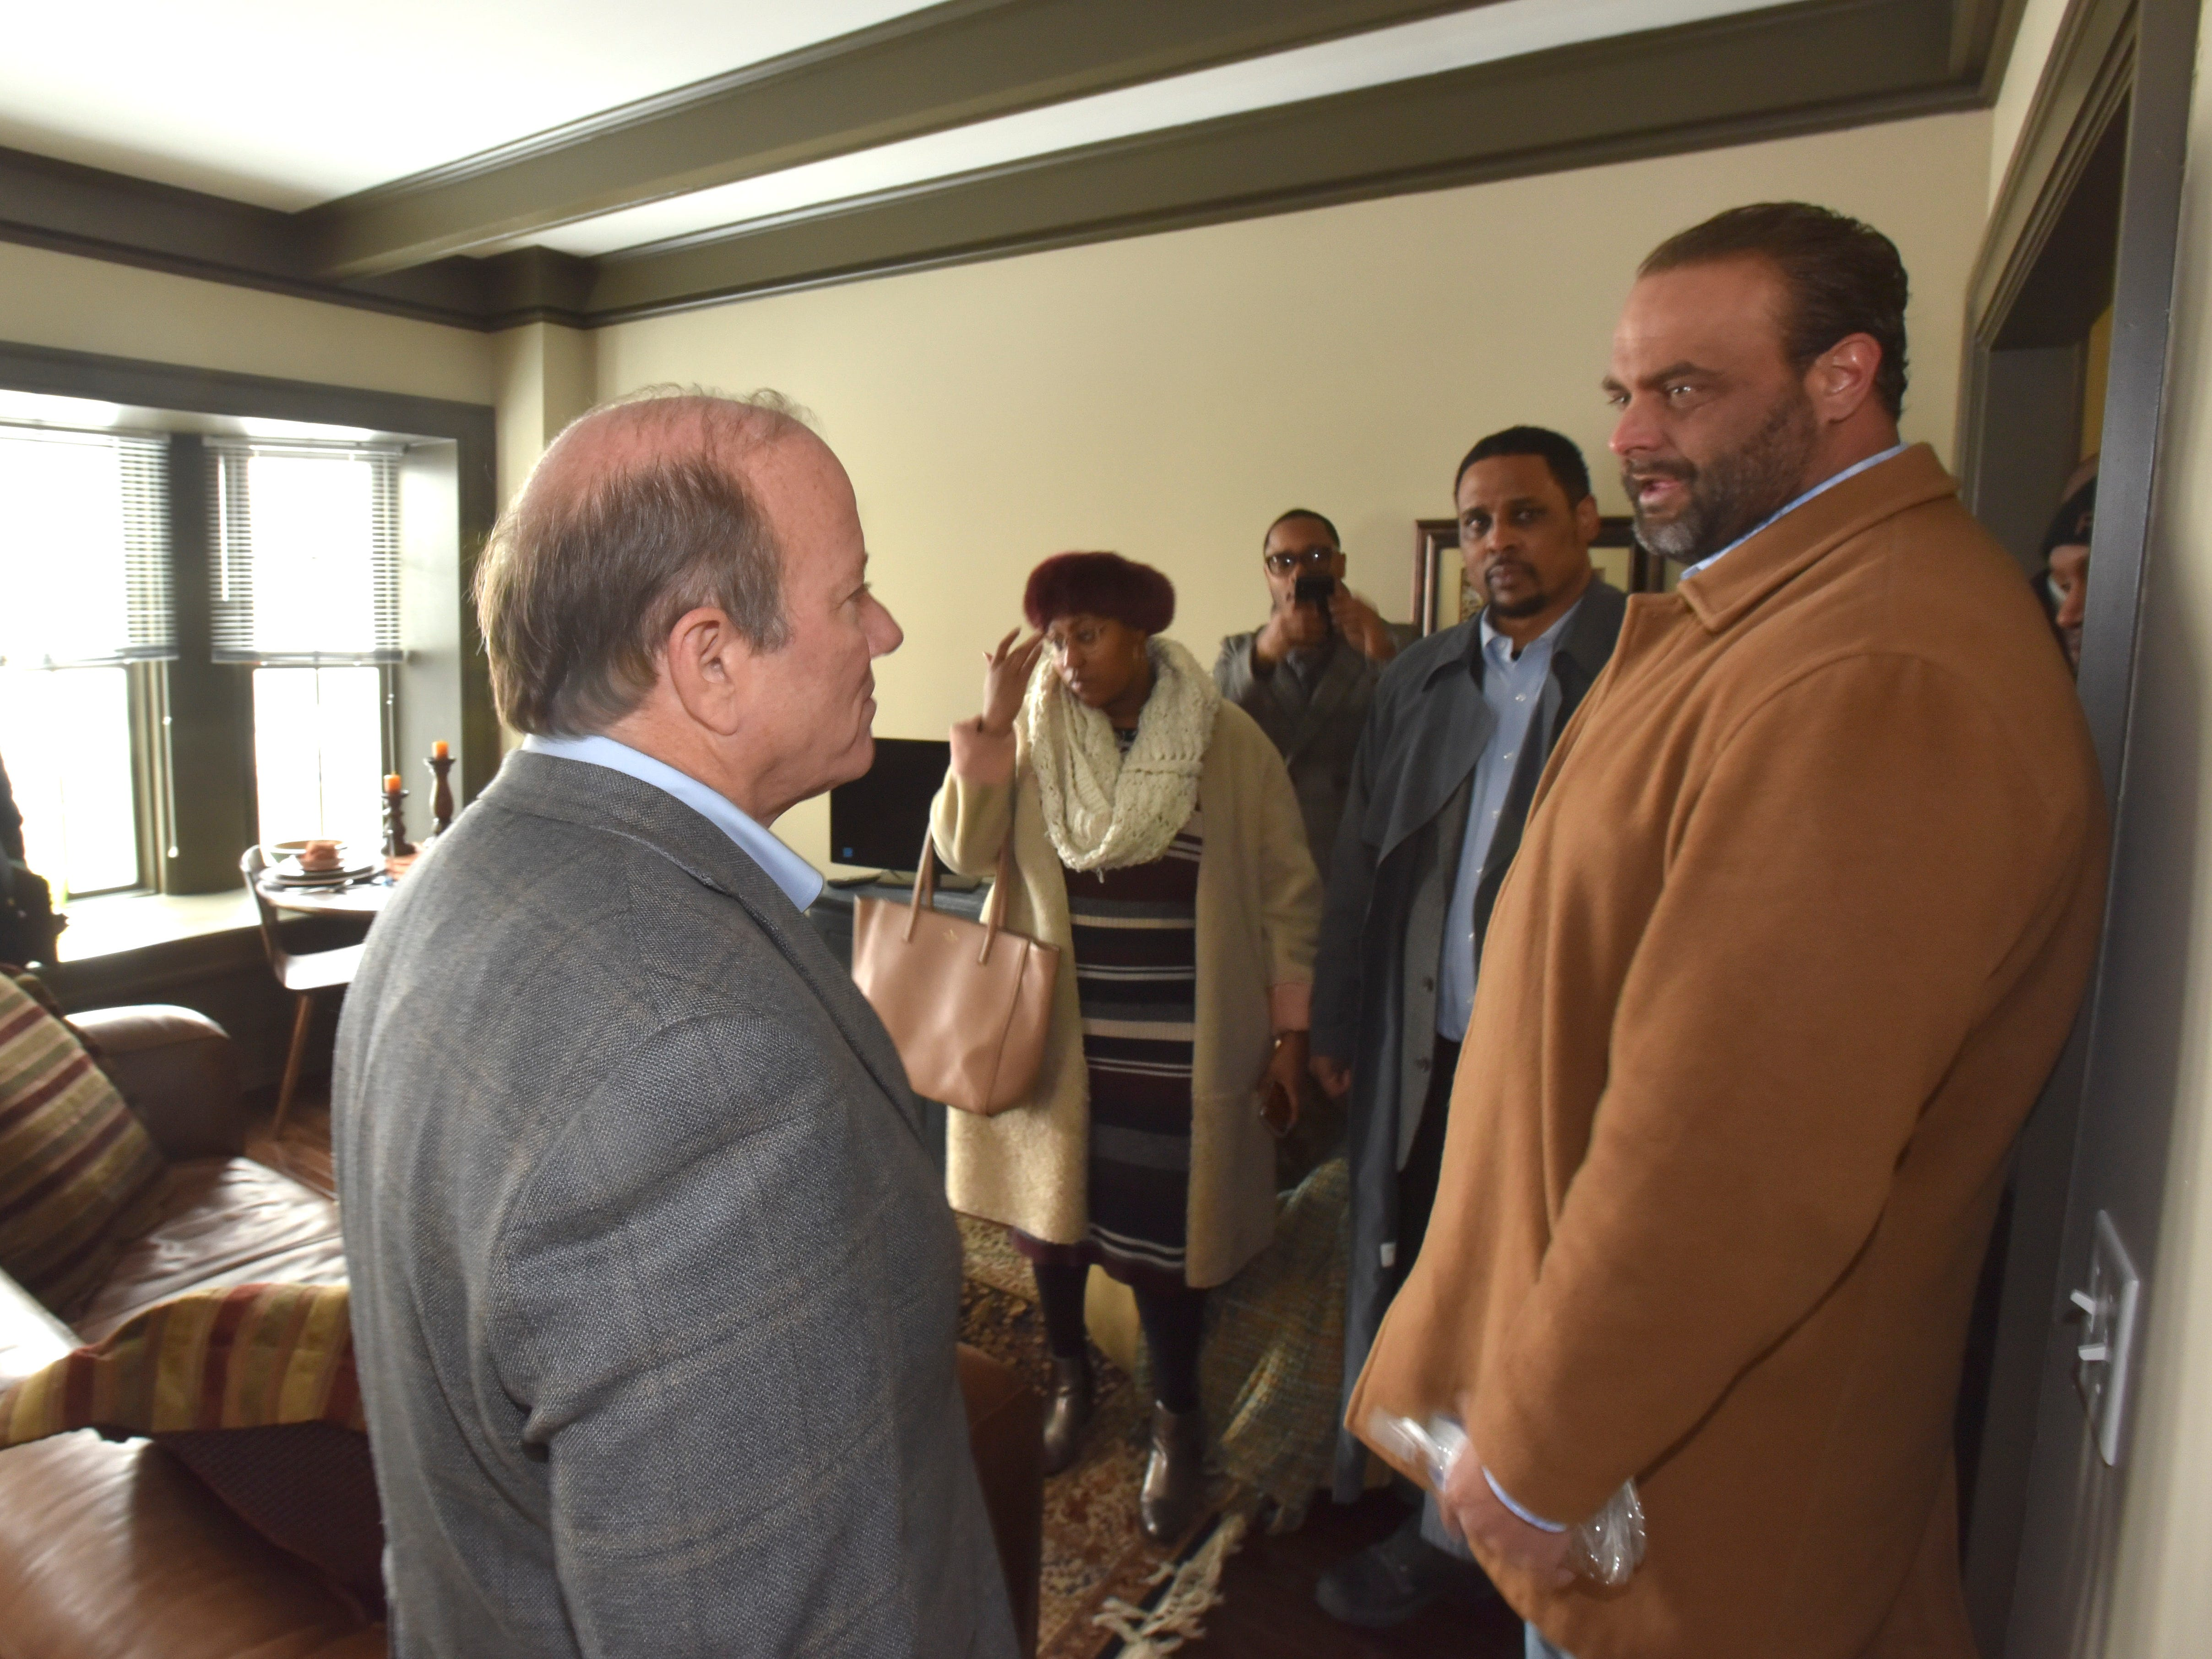 Detroit Mayor Mike Duggan, left, talks with CCIH President and CEO Ryan Lepper, right, in one of the finished apartments.